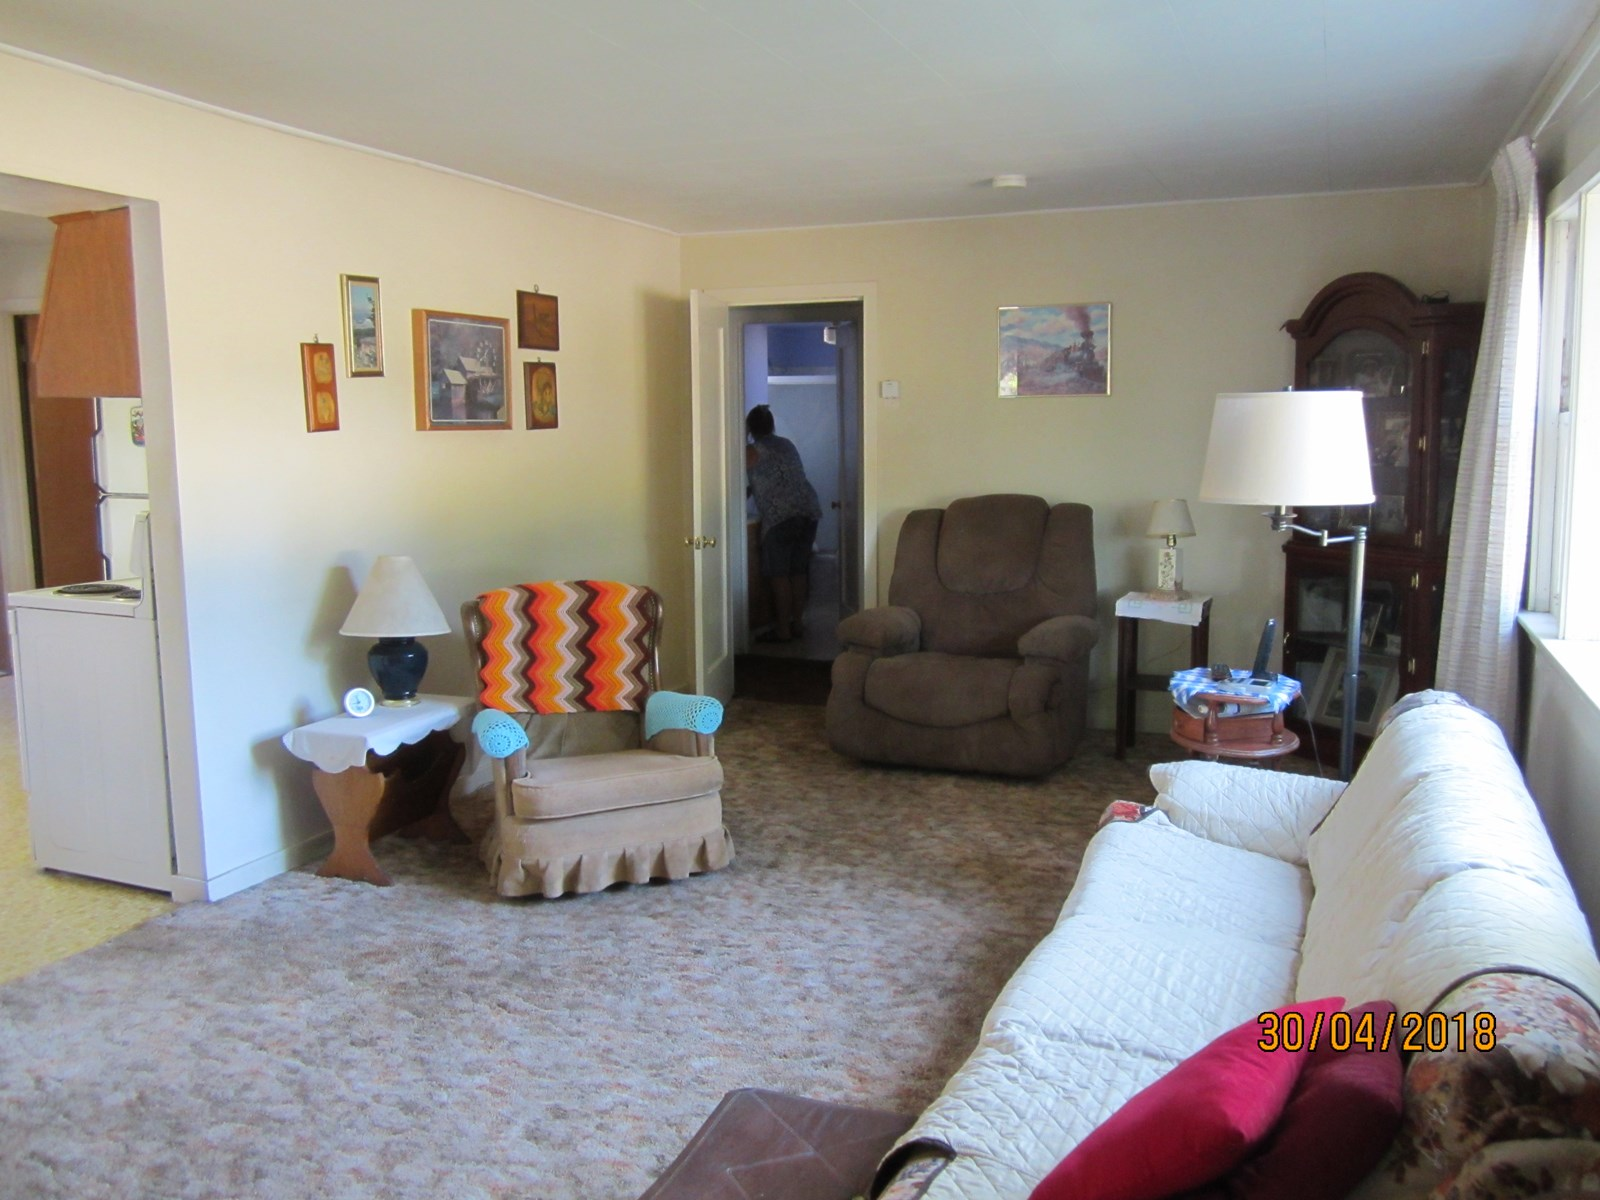 2 bed/1 bath 1167 sq. ft home with quest quarter in Alturas,